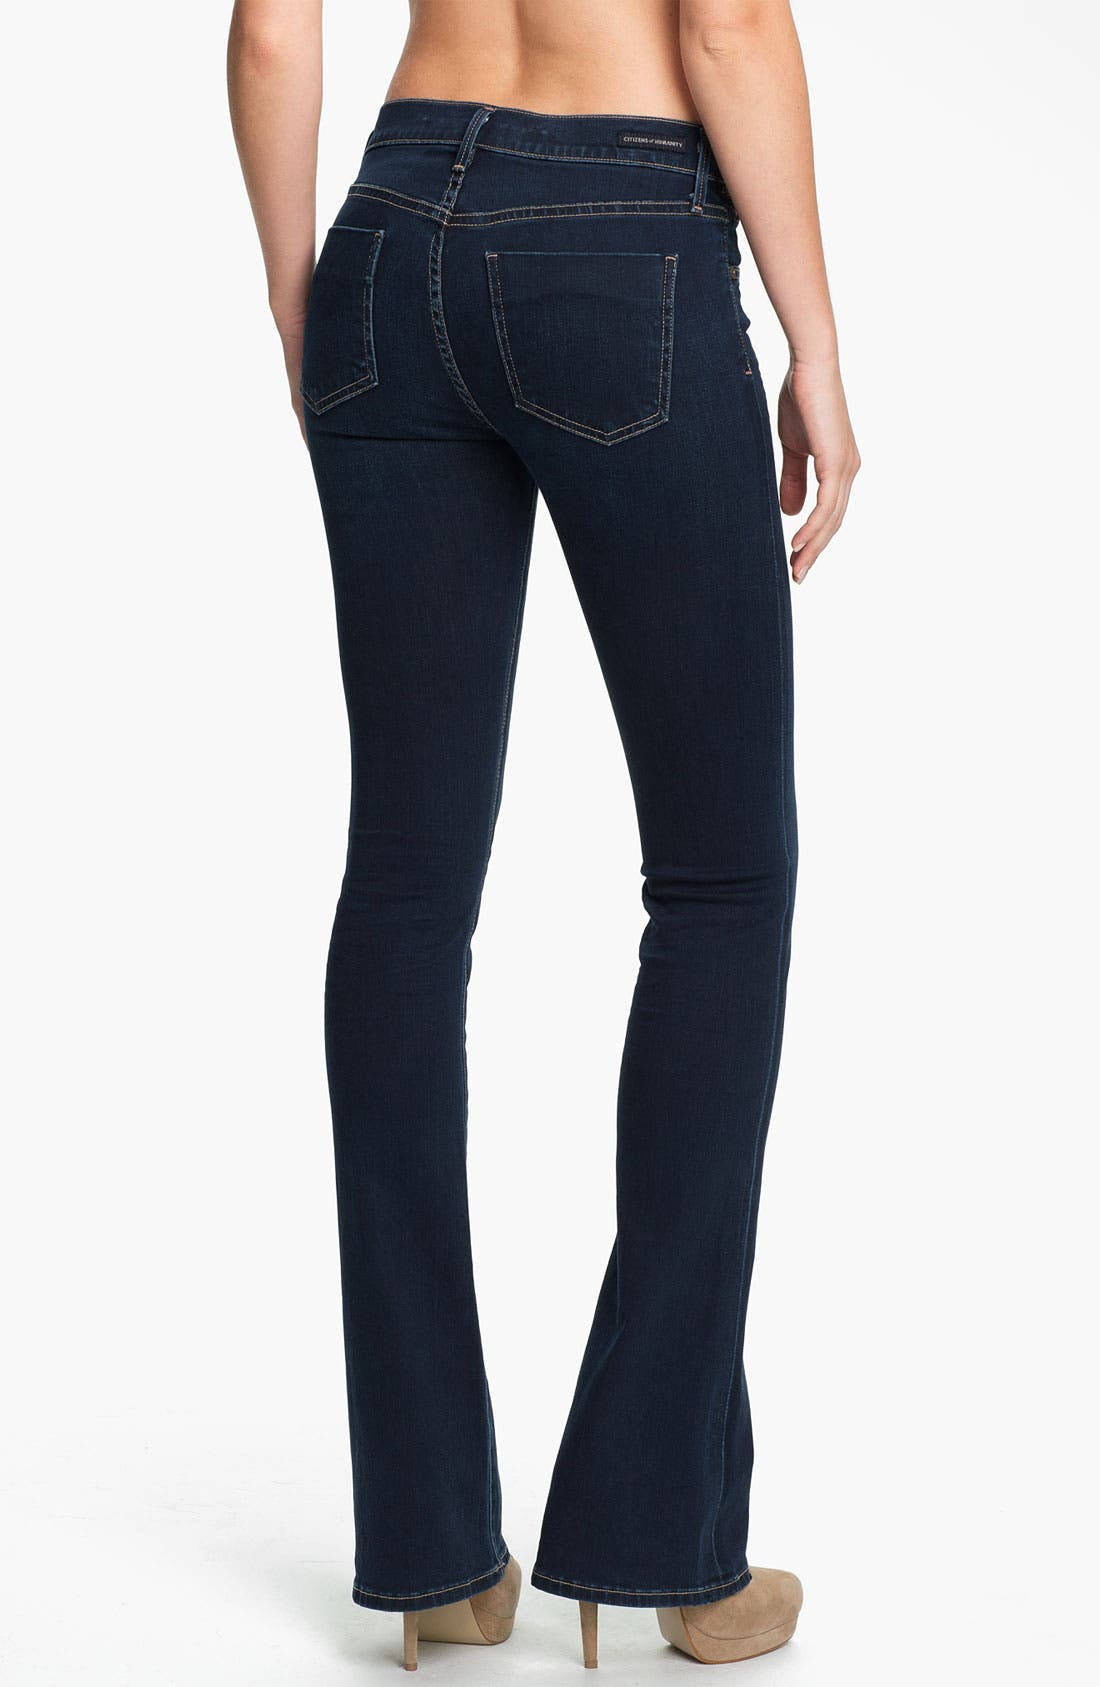 Alternate Image 2  - Citizens of Humanity 'Emmanuelle' Slim Bootcut Jeans (Starry)